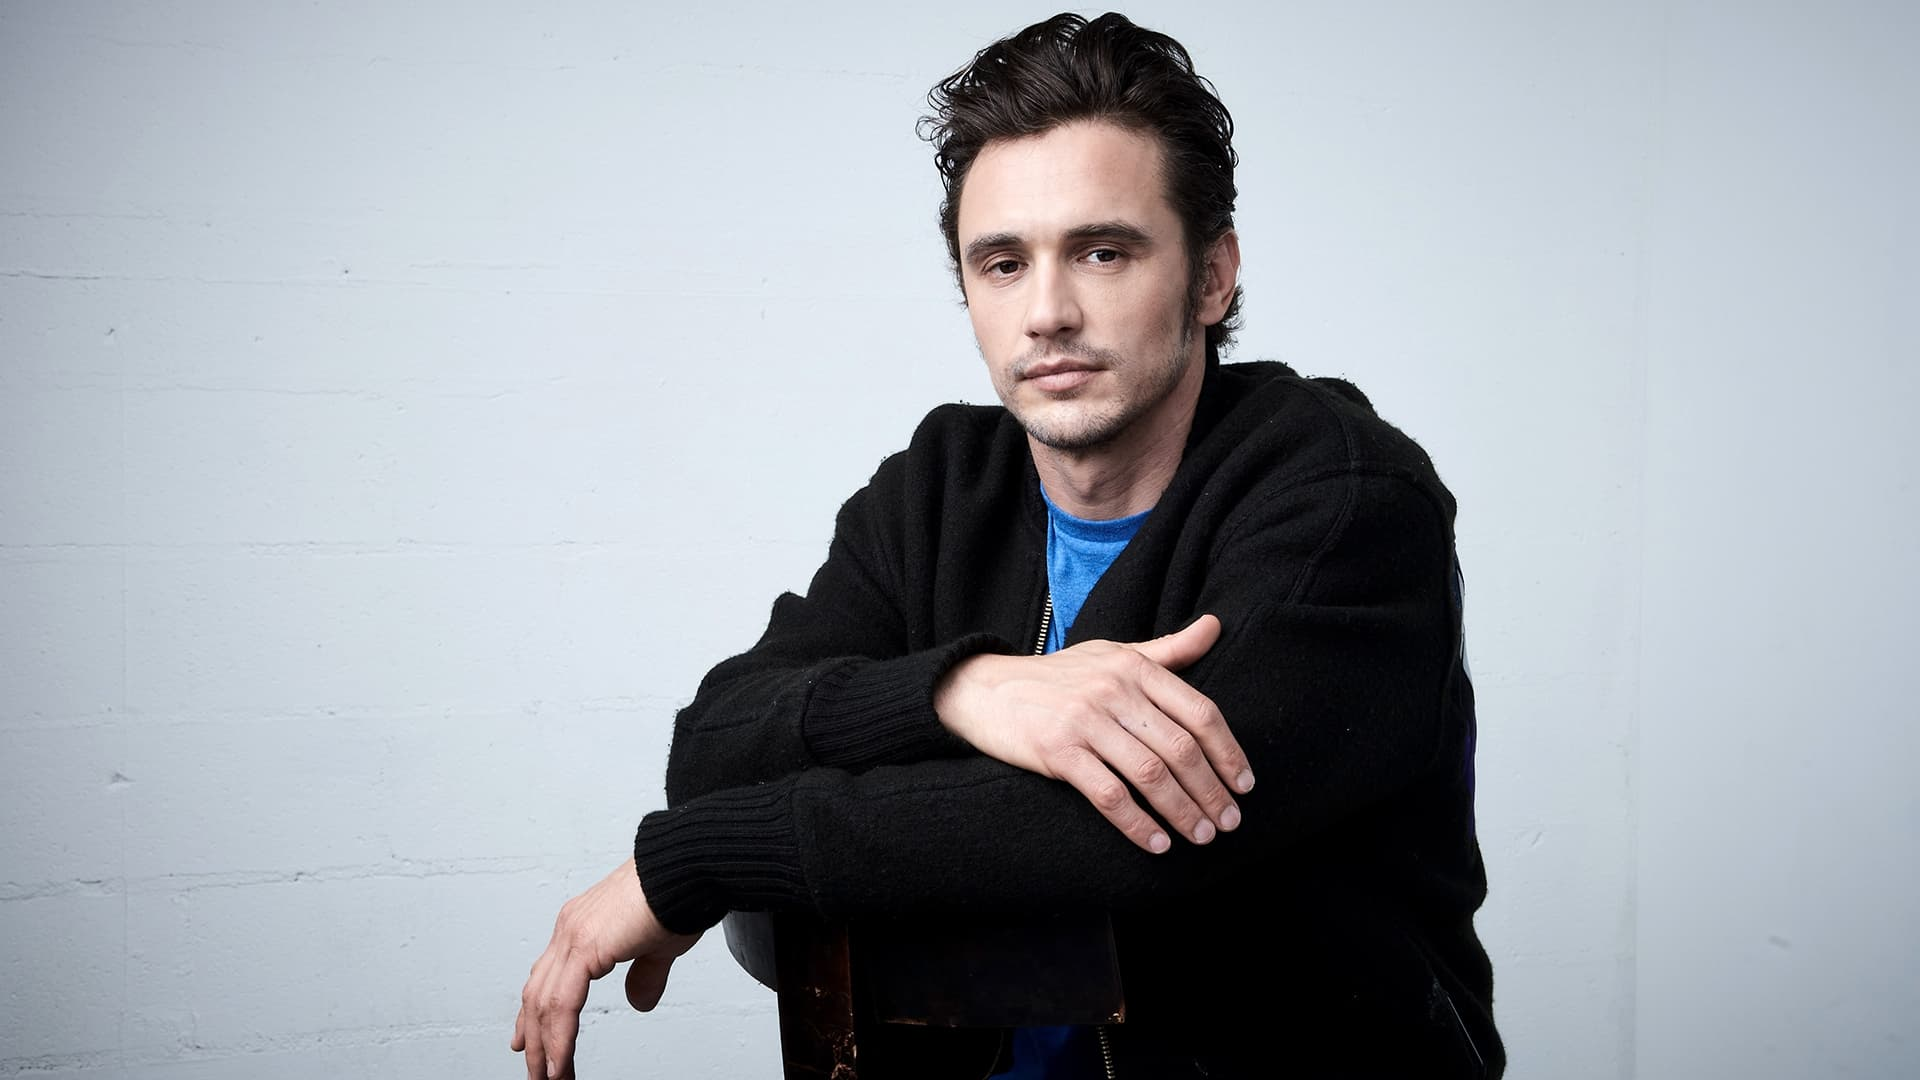 16 James Franco Wallpapers Hd High Quality Download